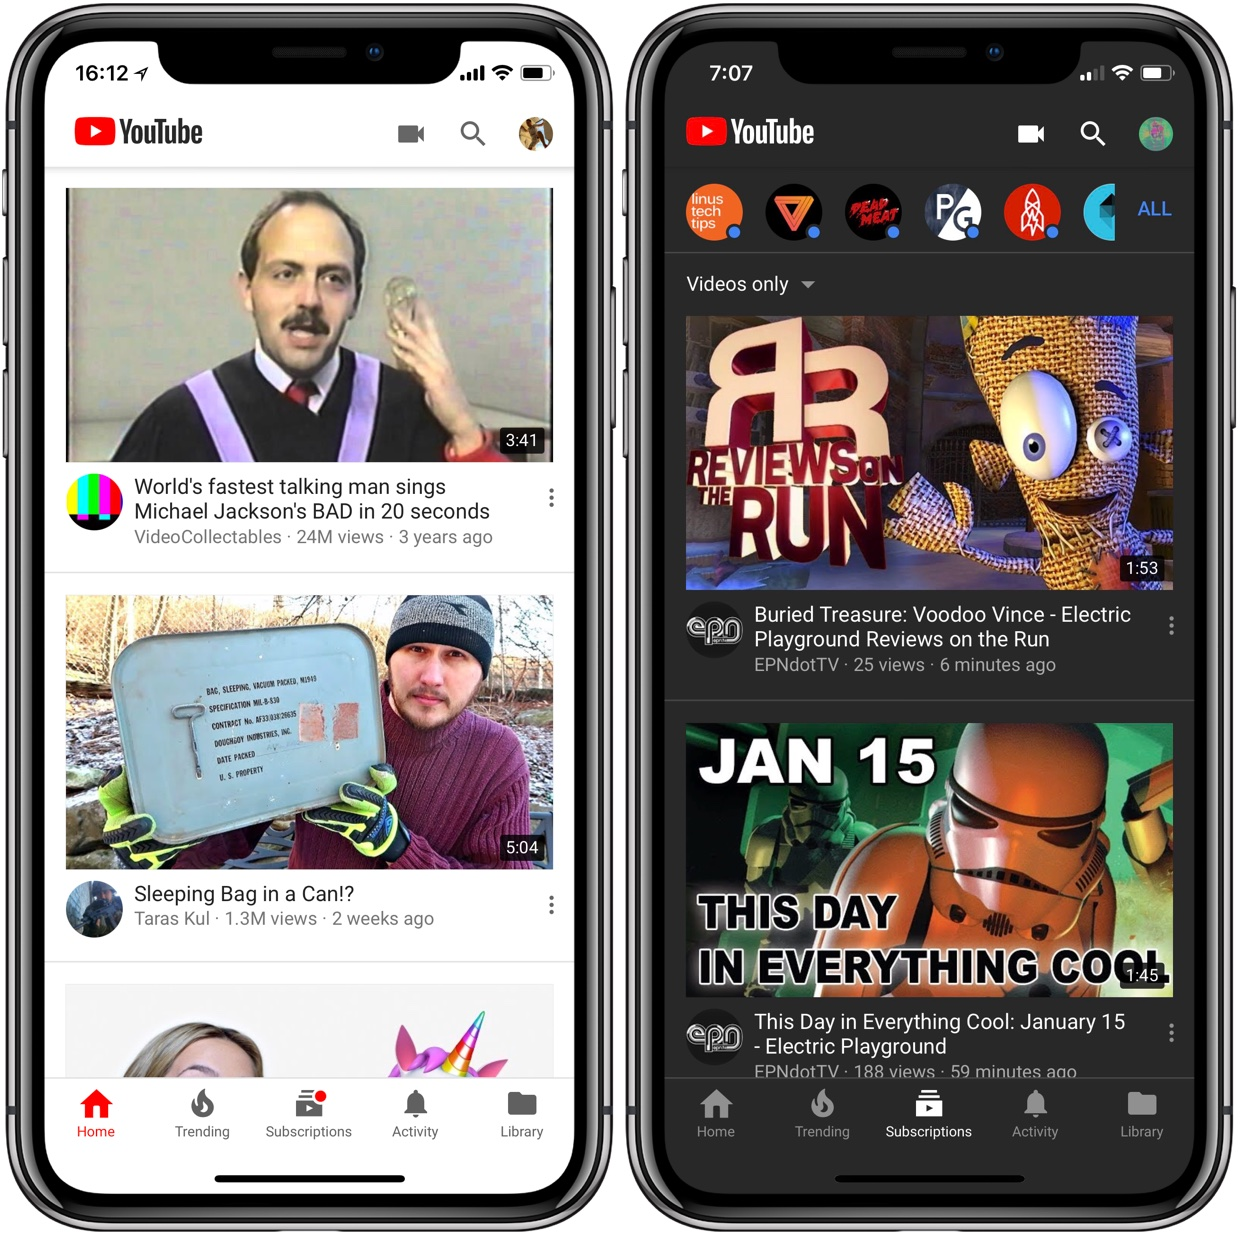 youtubes standard white interface at left and the new dark theme at right